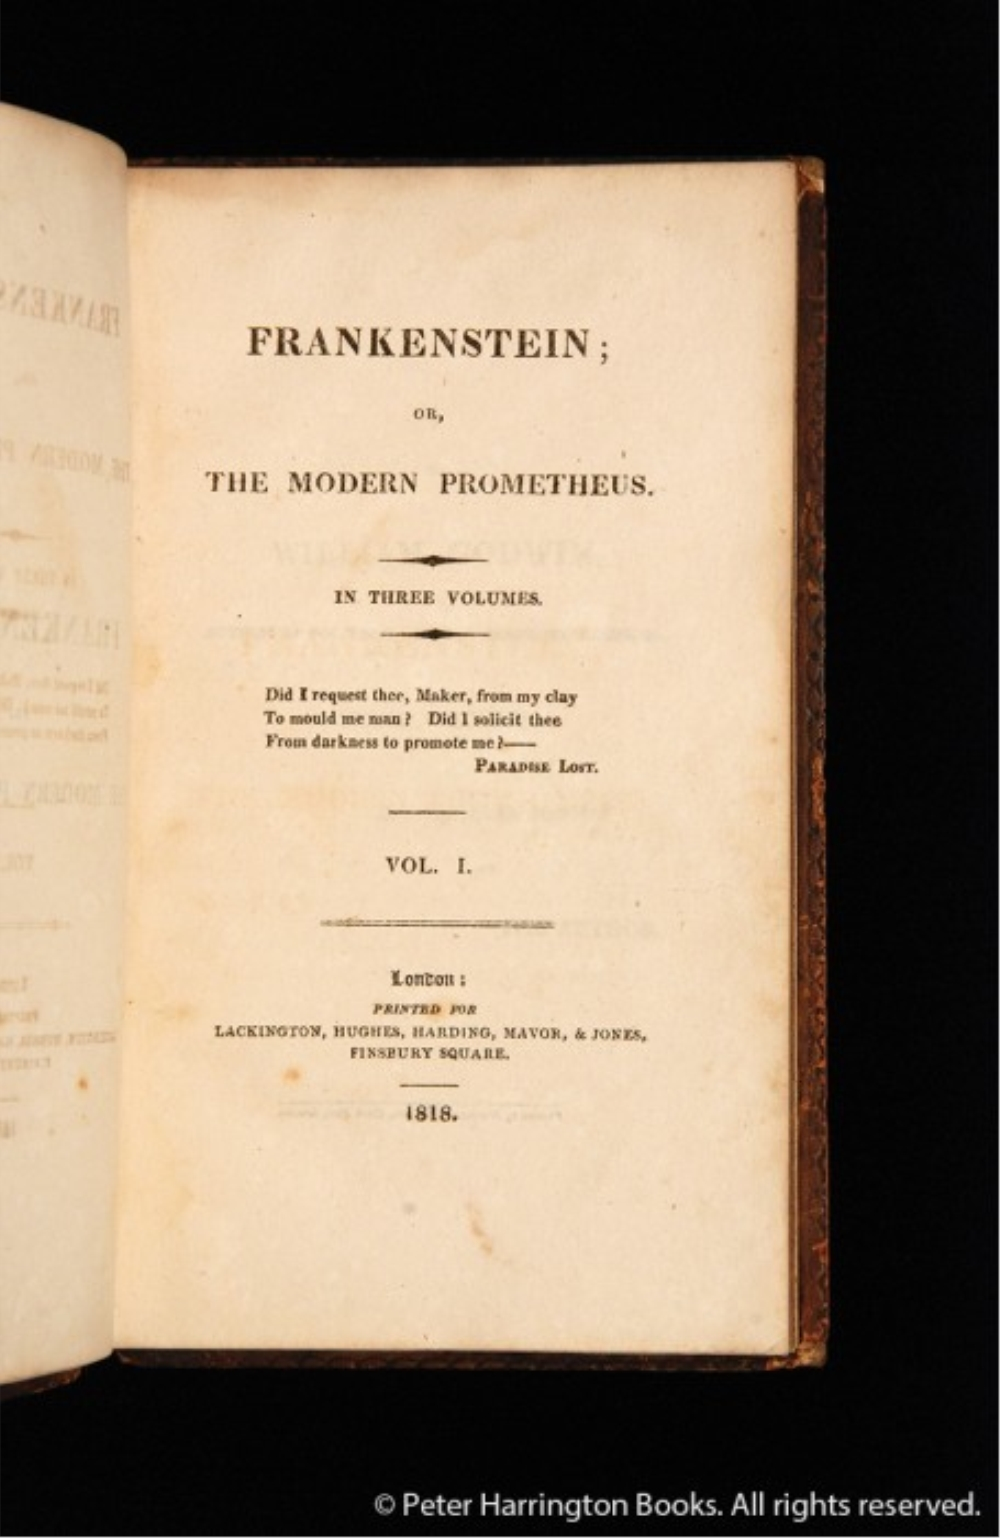 difference between frankenstein 1818 and 1831 2018-10-10 the novel of frankenstein portrays the creature as a sympathetic, tragic figure who desires only the affection of his creator, dr victor frankenstein, while the film version, which stars boris karloff as the creature, suggests that the creature is monstrous, violent and evil.